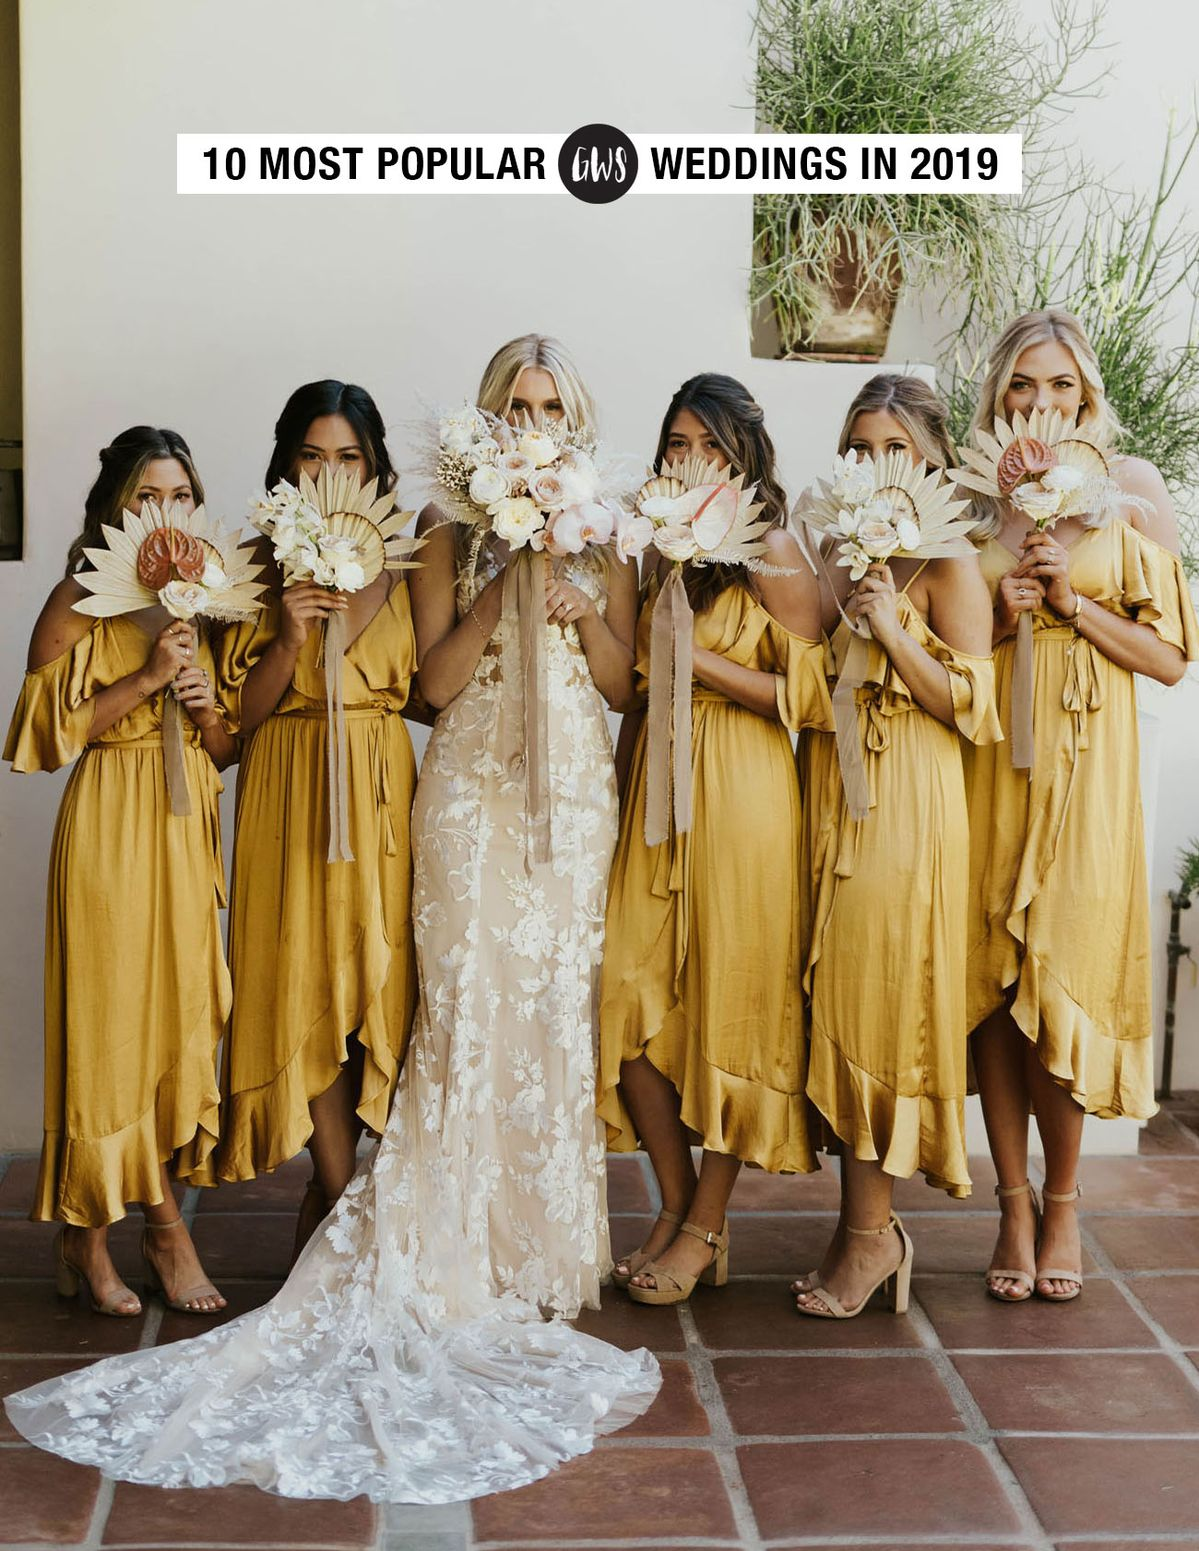 The 10 Most Popular Weddings of 2019